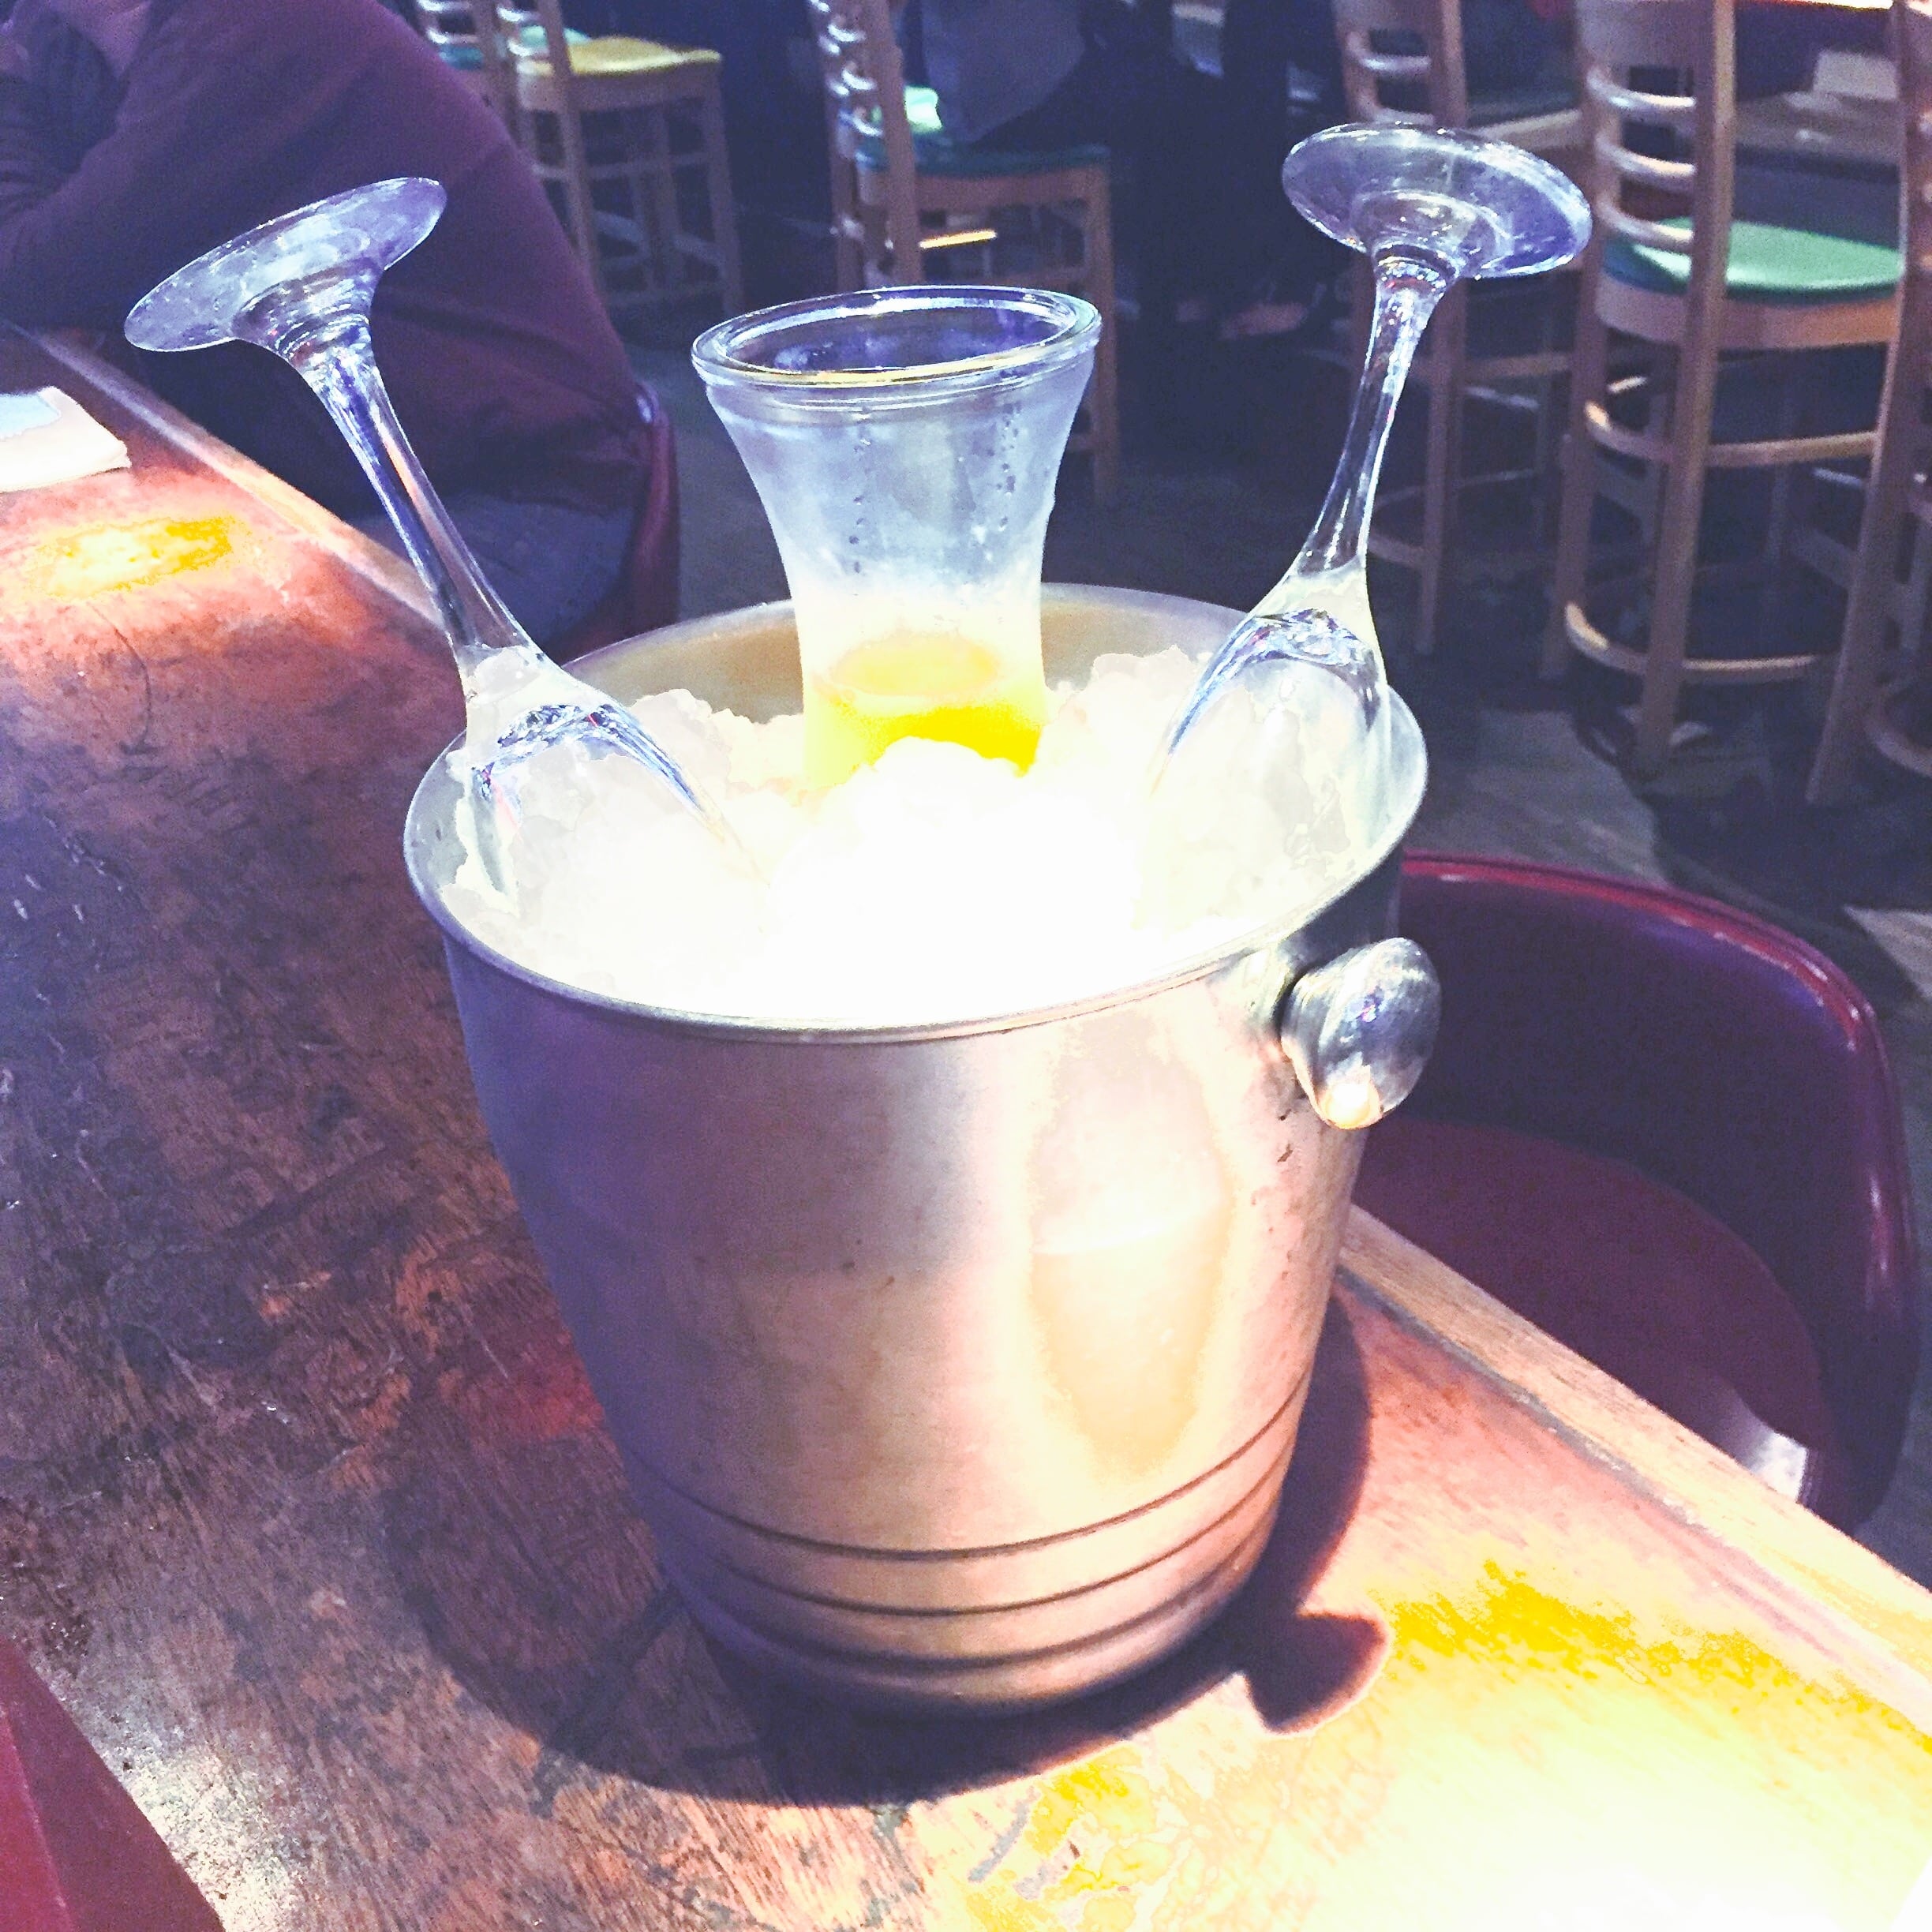 Champagne Bucket with carafe of Mimosas and two glasses